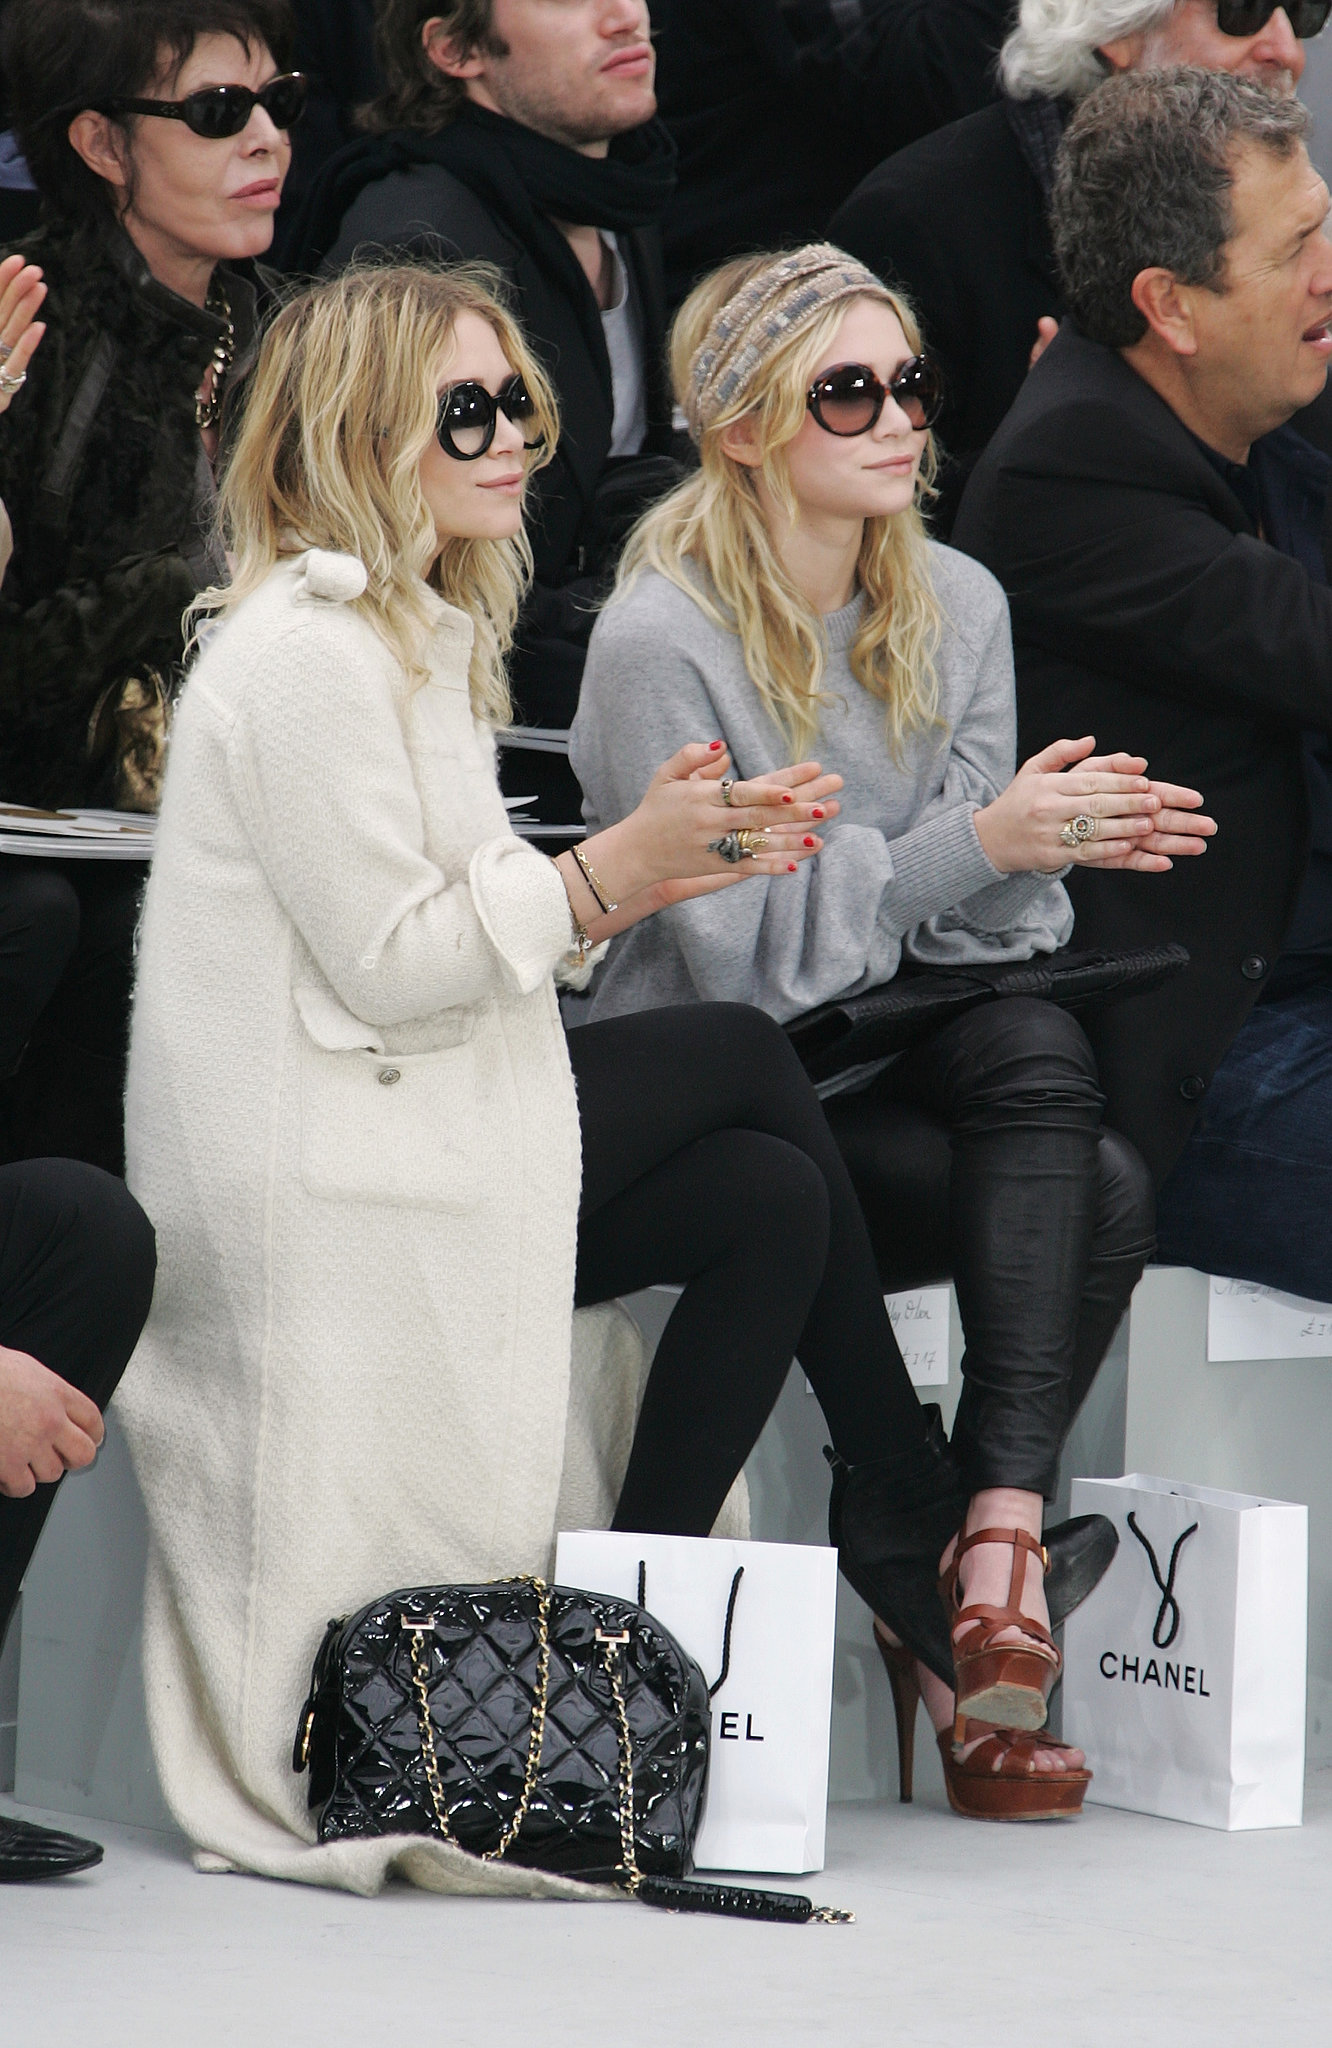 Twinning combo: The girls took in the Chanel Fall/Winter 2008 show with killer eyewear.  Ashley paired a long, white tweed coat with black ankle boots, a quilted bag, and oversize shades. Mary-Kate went sporty in a gray sweater, black leather leggings, and YSL platforms and a printed headscarf.